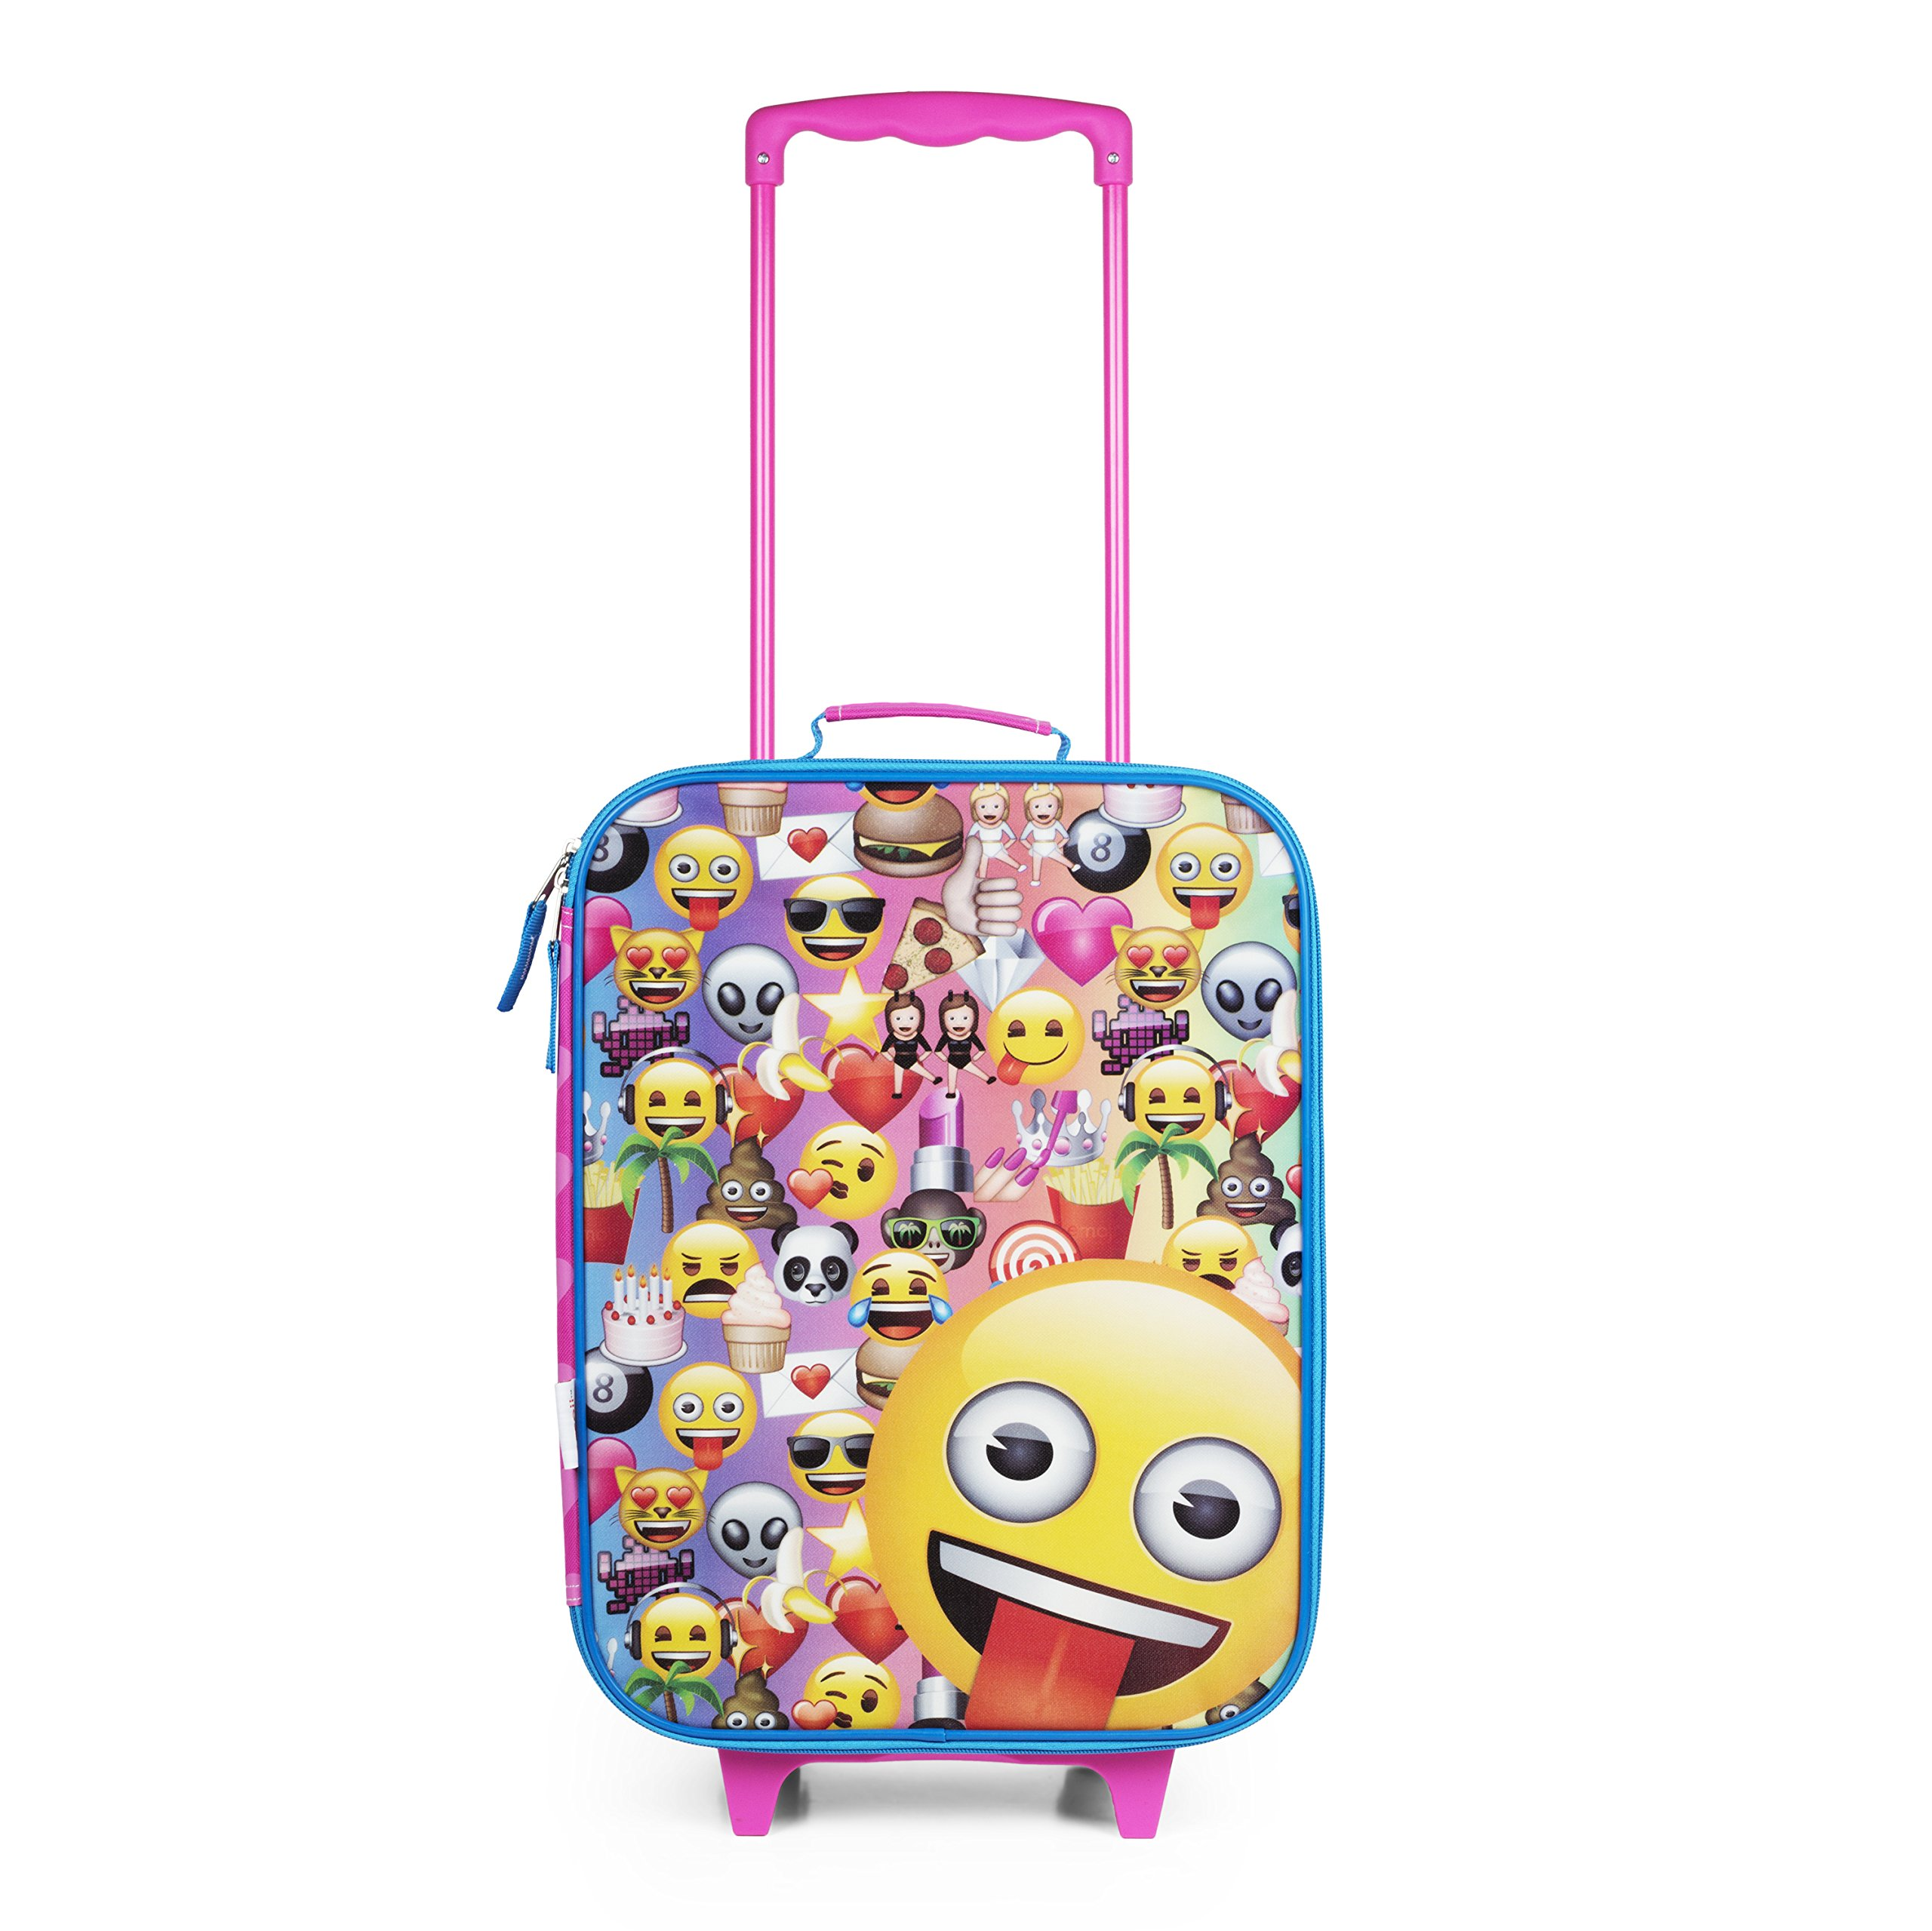 Emoji Pink Rainbow Faces Pilot Case Luggage by FAB Starpoint (Image #1)